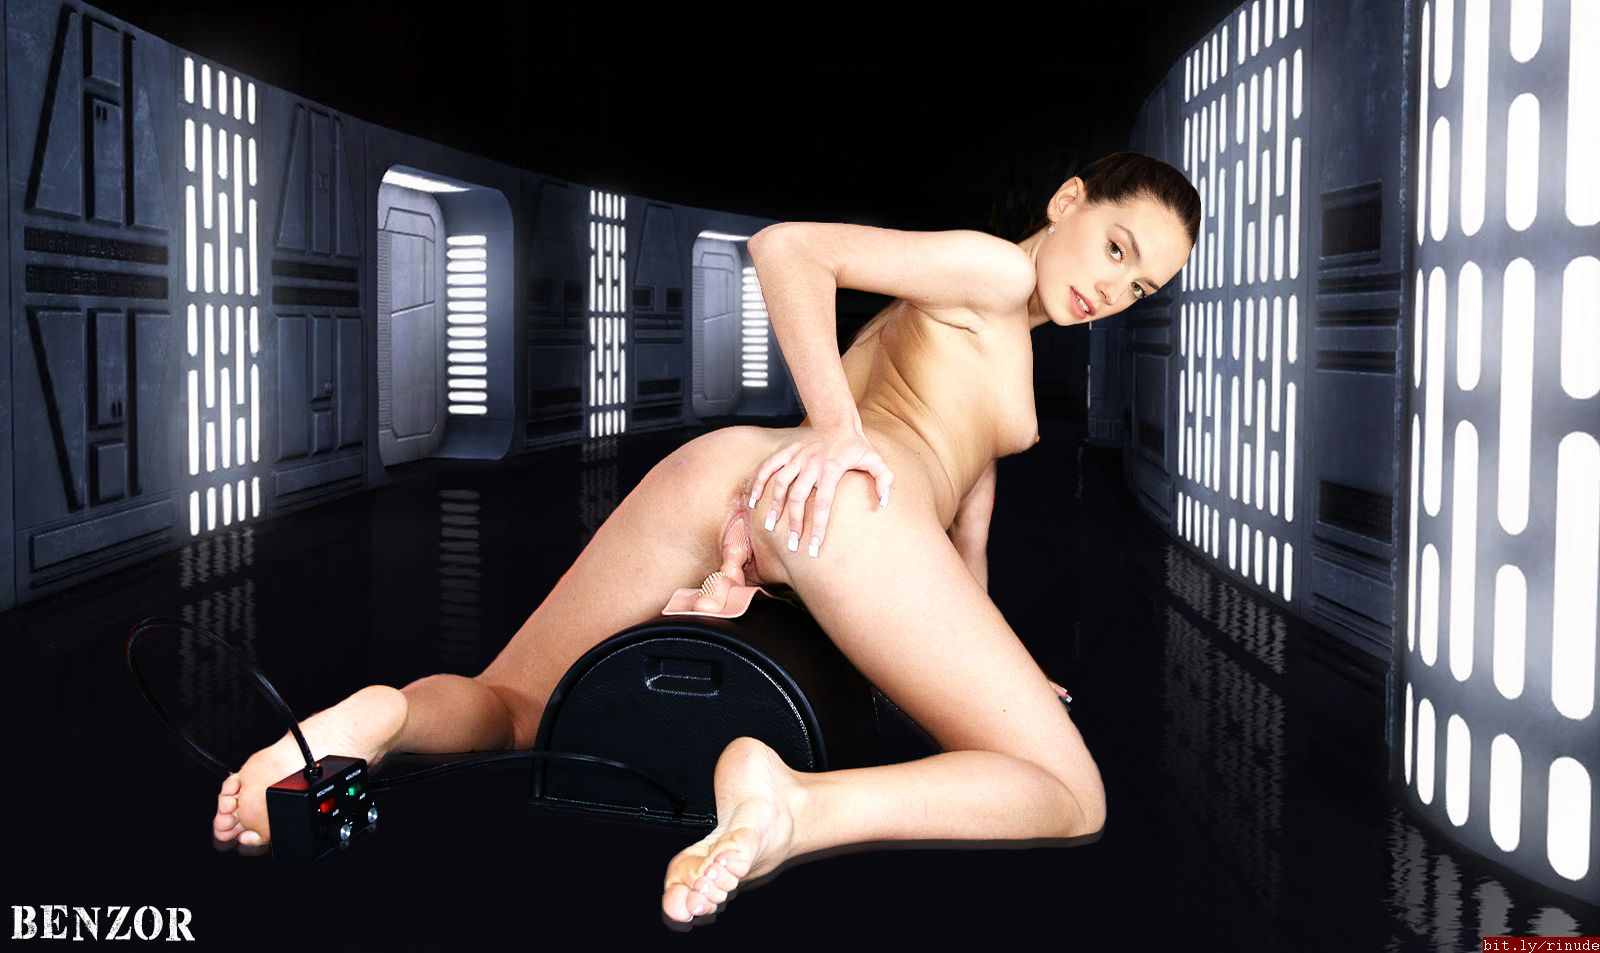 Star wars naked nude sexy have quickly